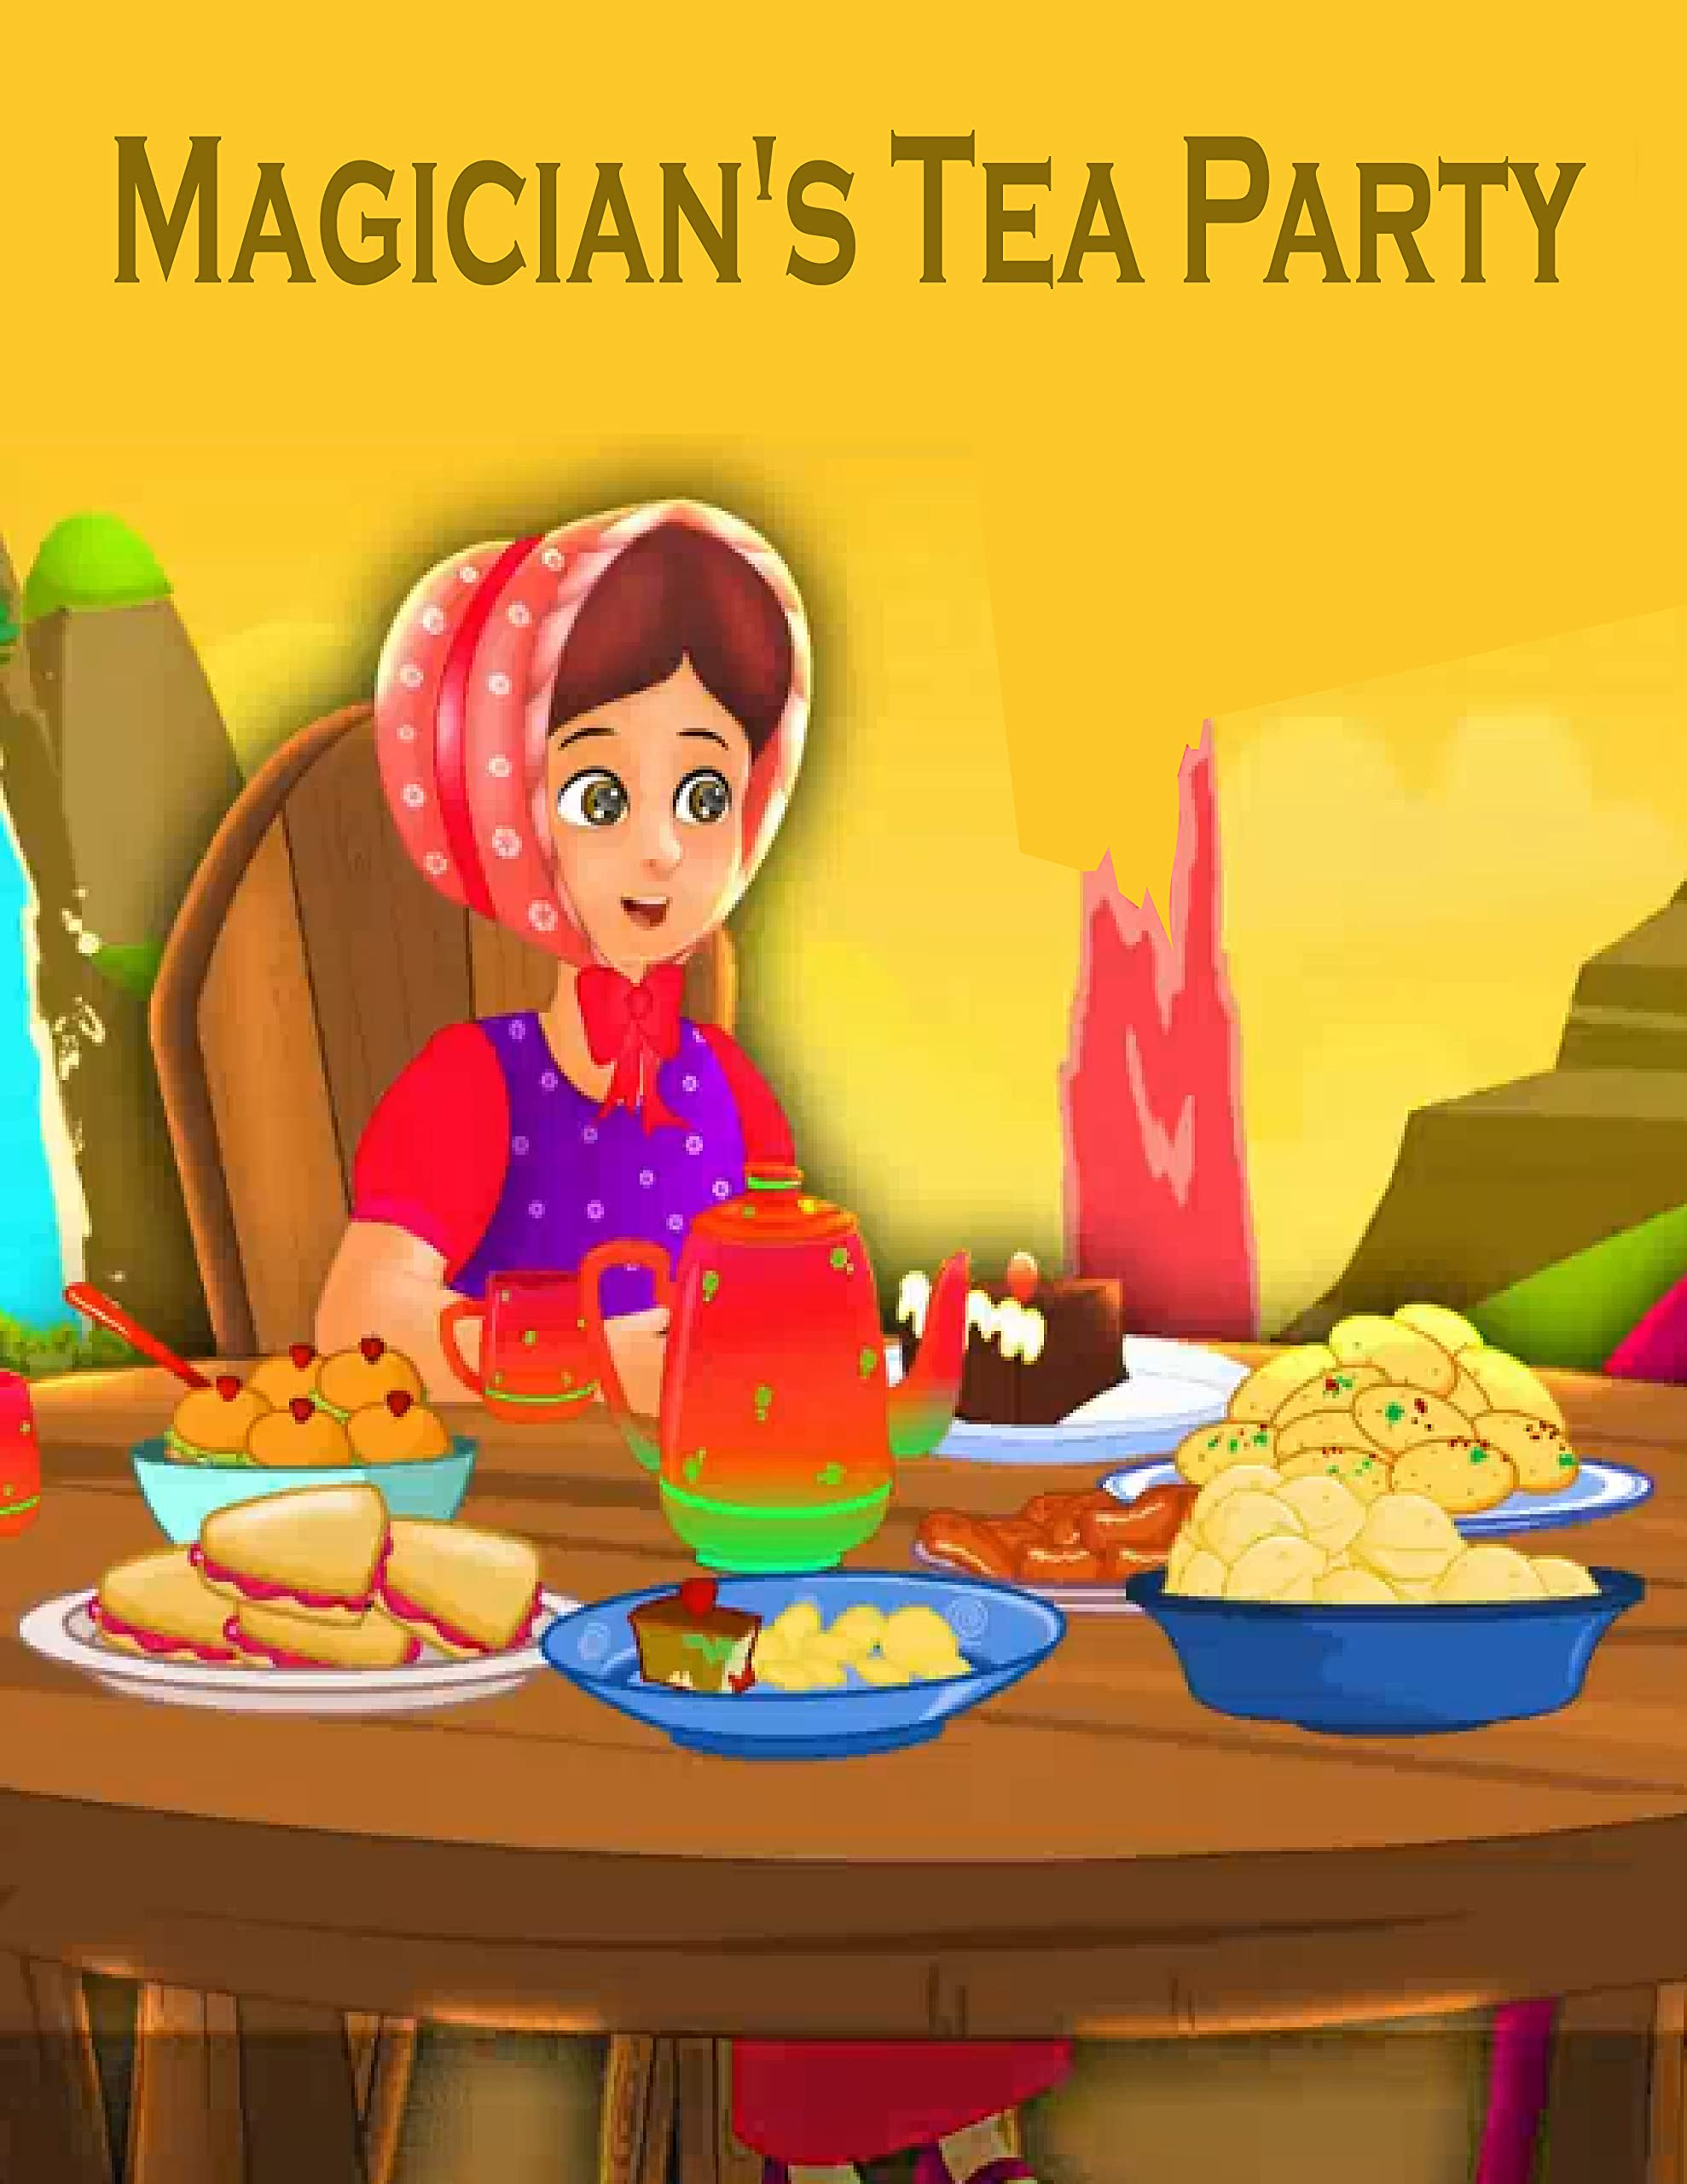 Story Of About The Magician's Tea Party: Bedtime Stories For Kids | Classic Stories For Kids In English | S304